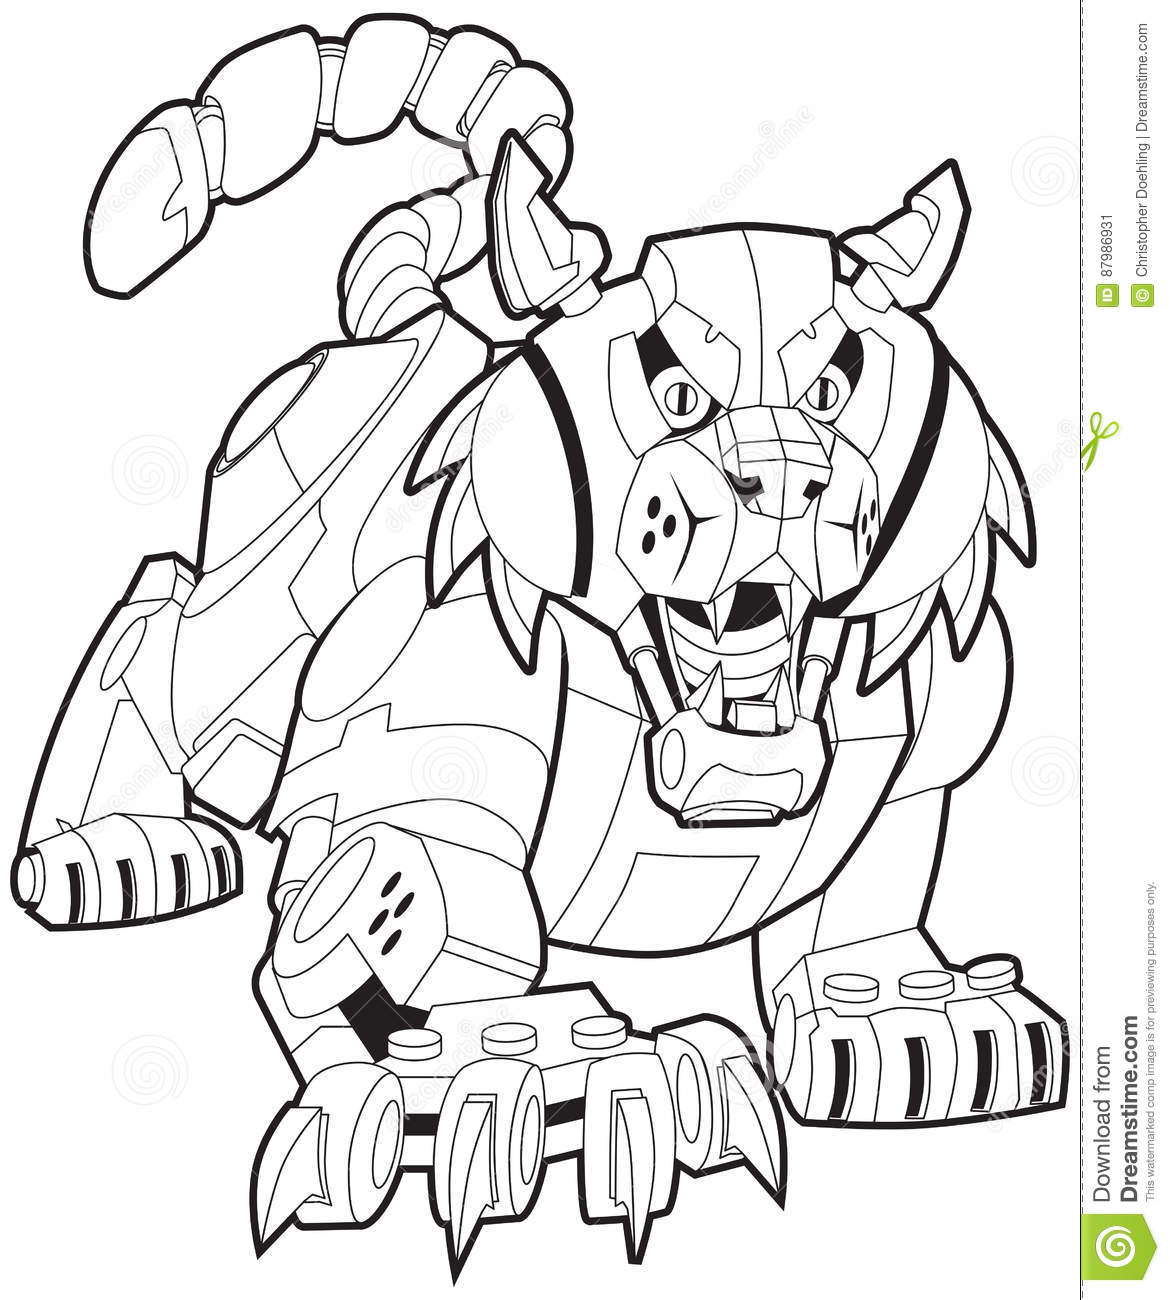 Mechanical Robot Bobcat Or Wildcat Vector Mascot